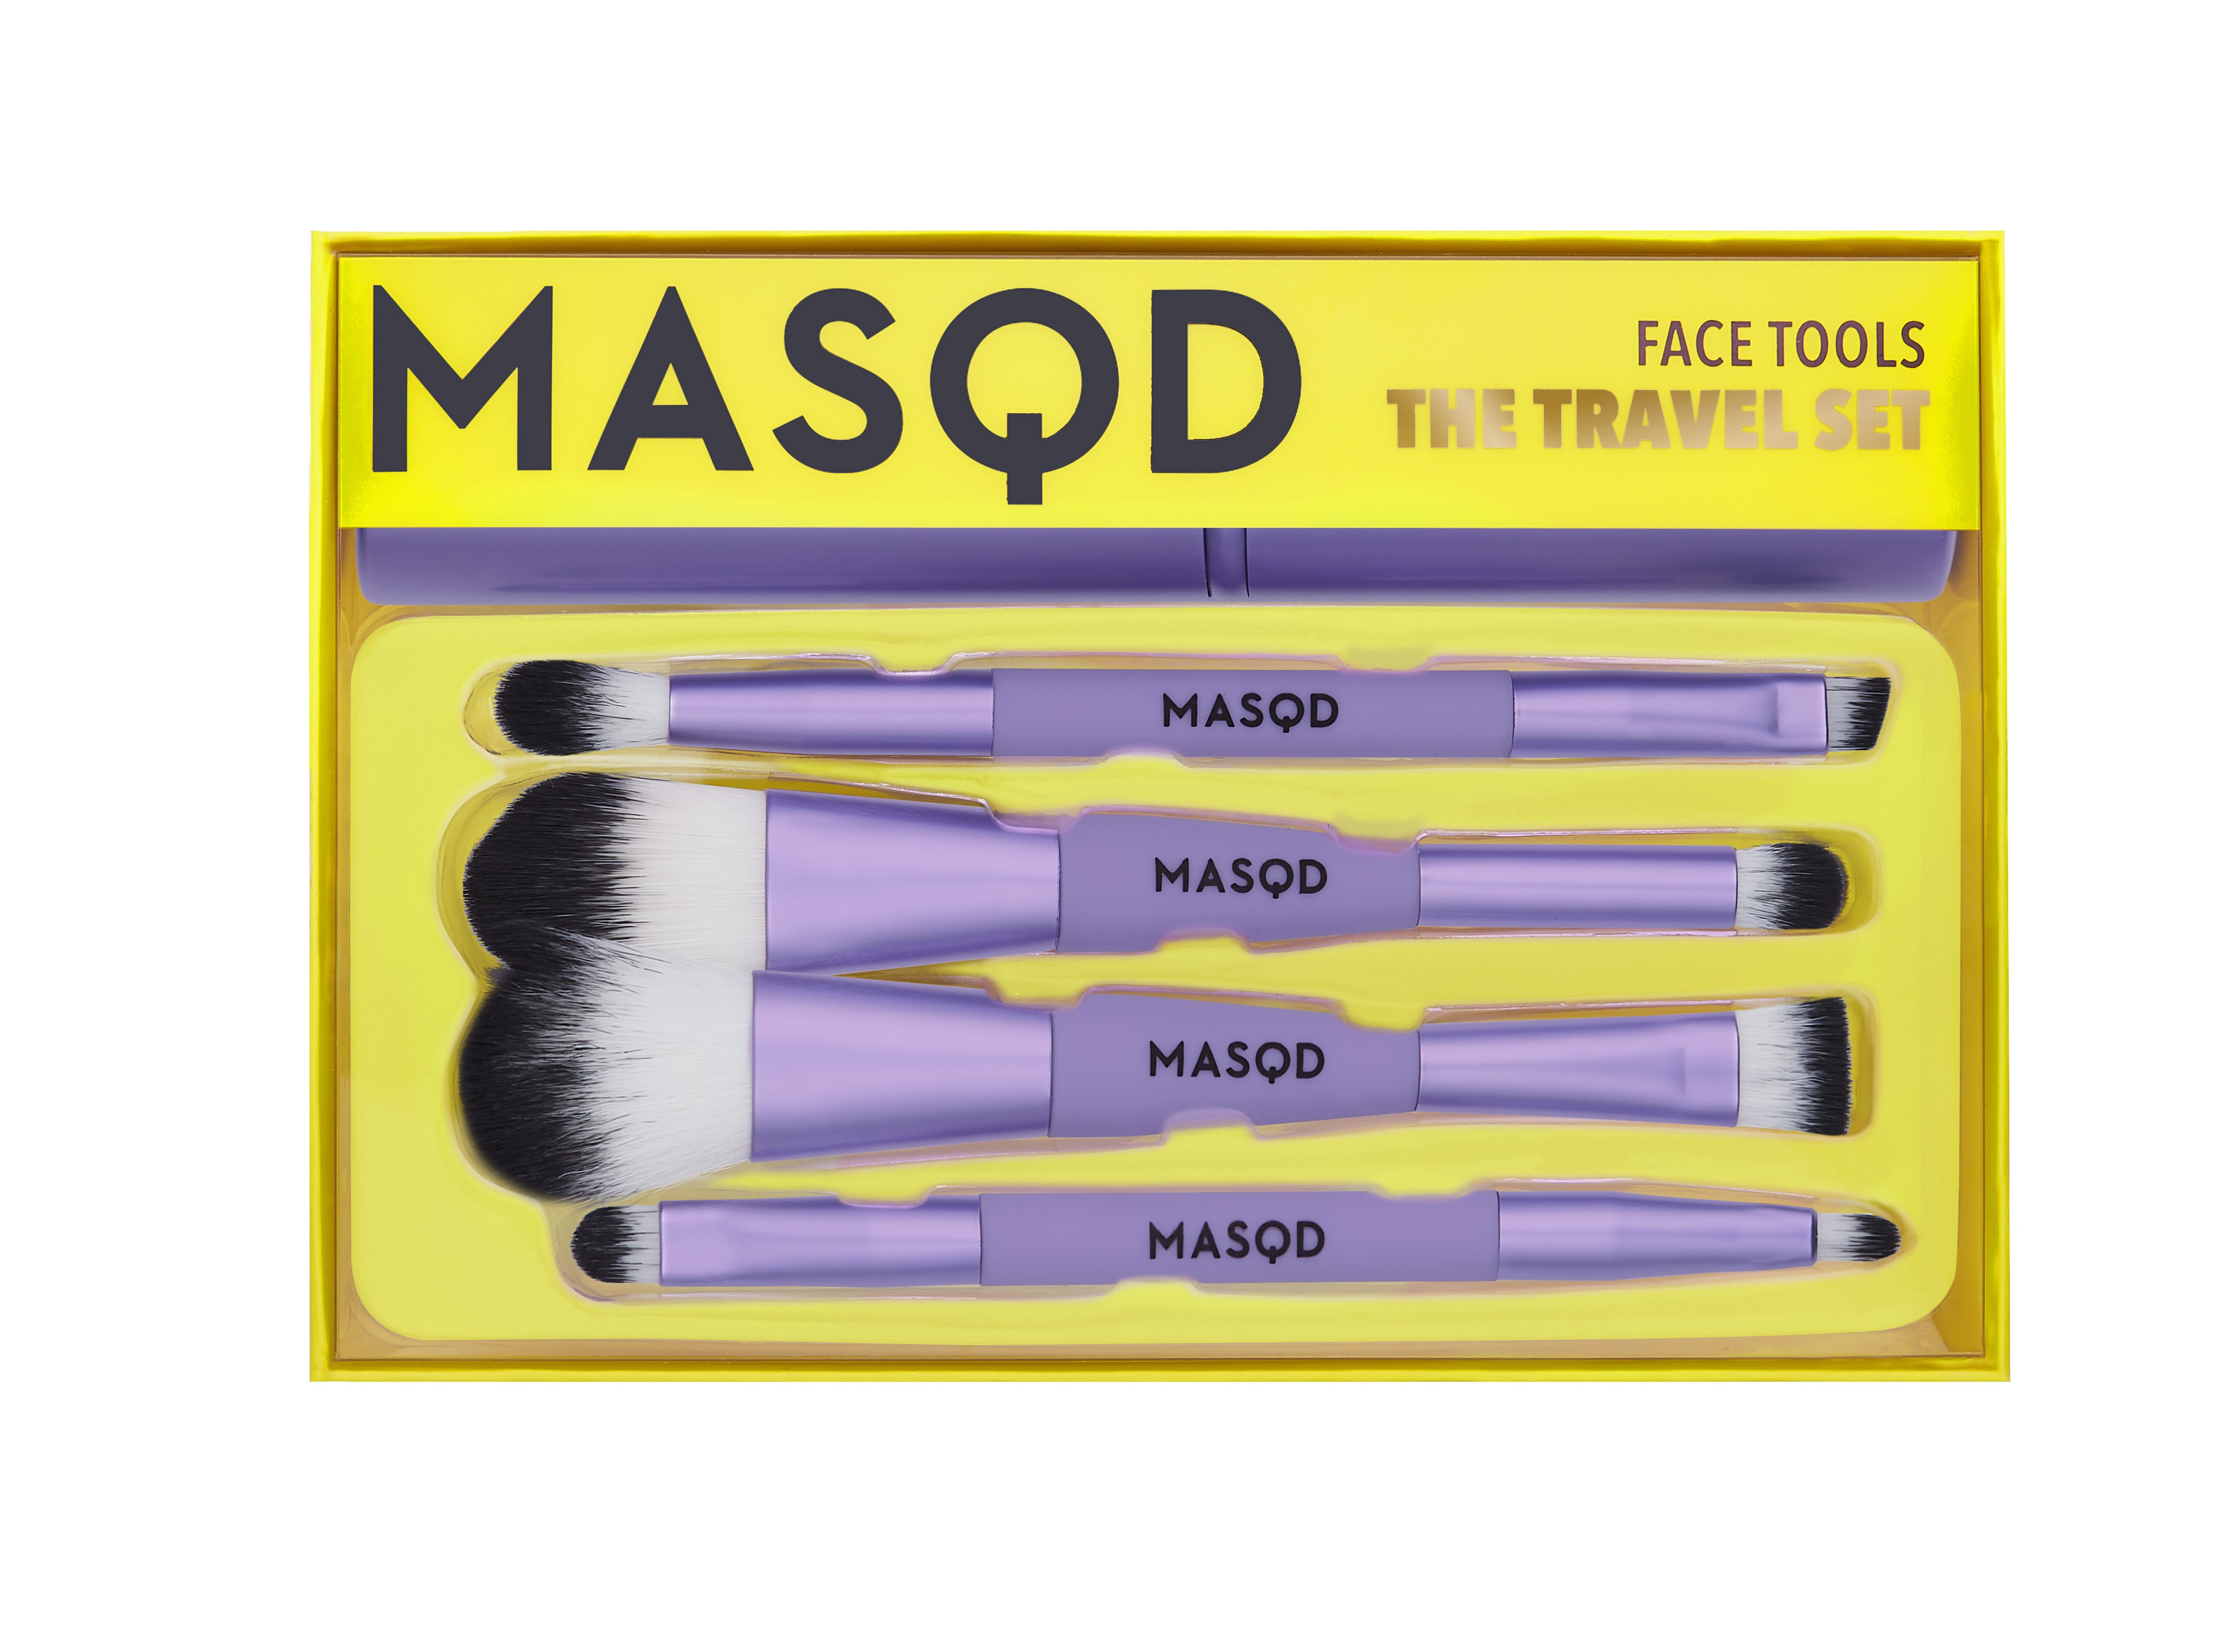 NEW MASQD MAKEUP BRUSHES